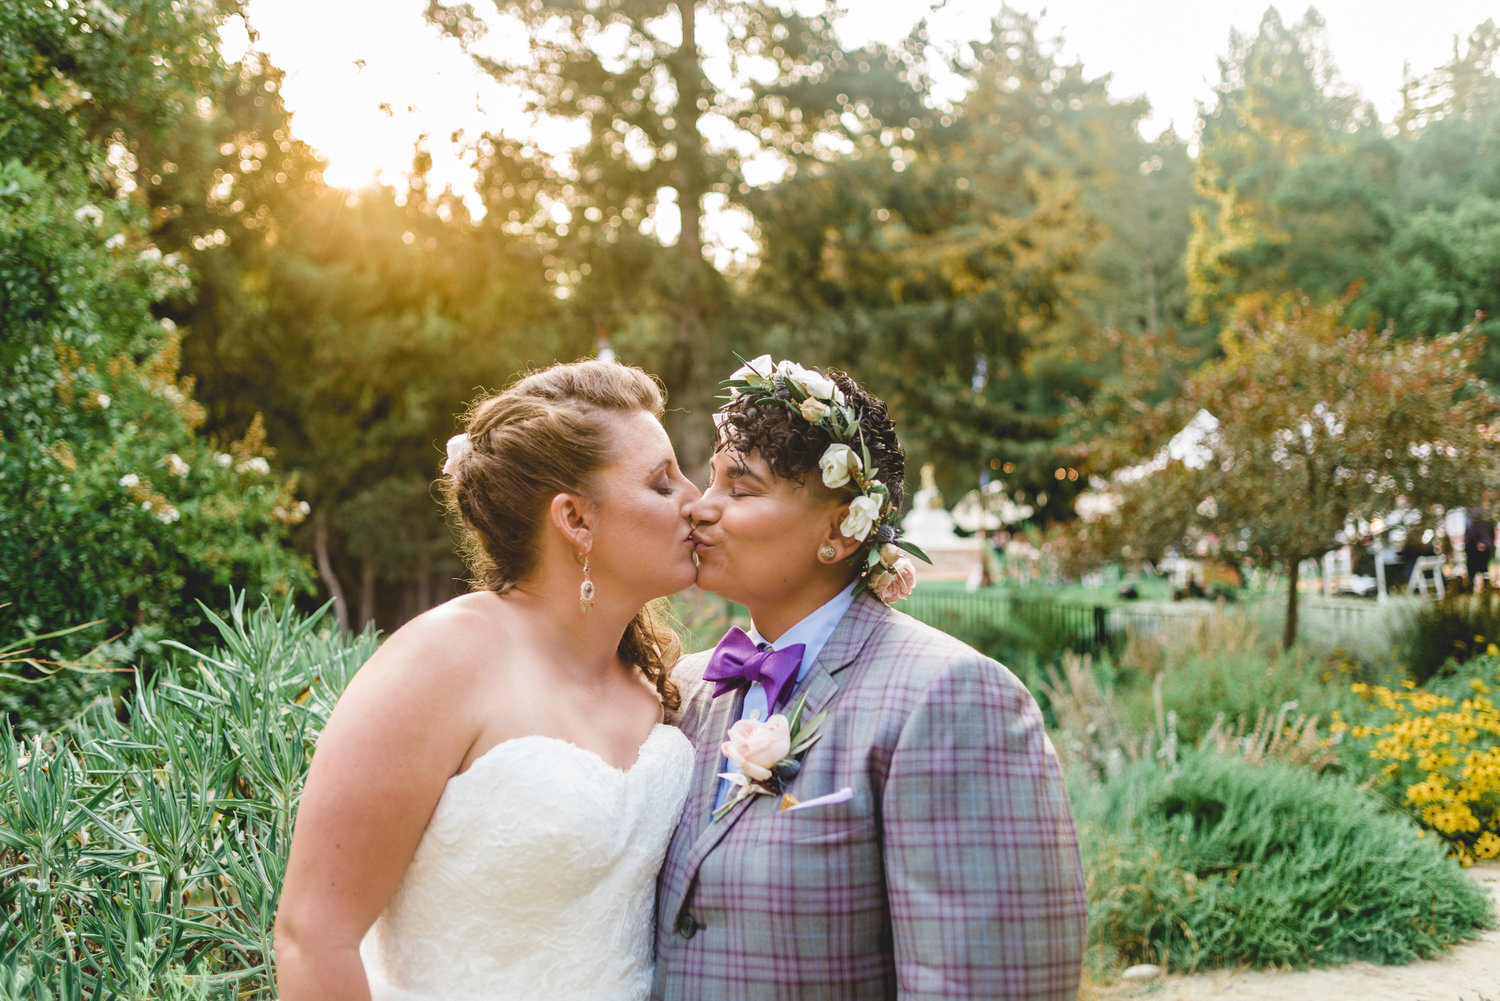 Carrie and roz kissing before their wedding ceremony at redwoods sanctuary in california